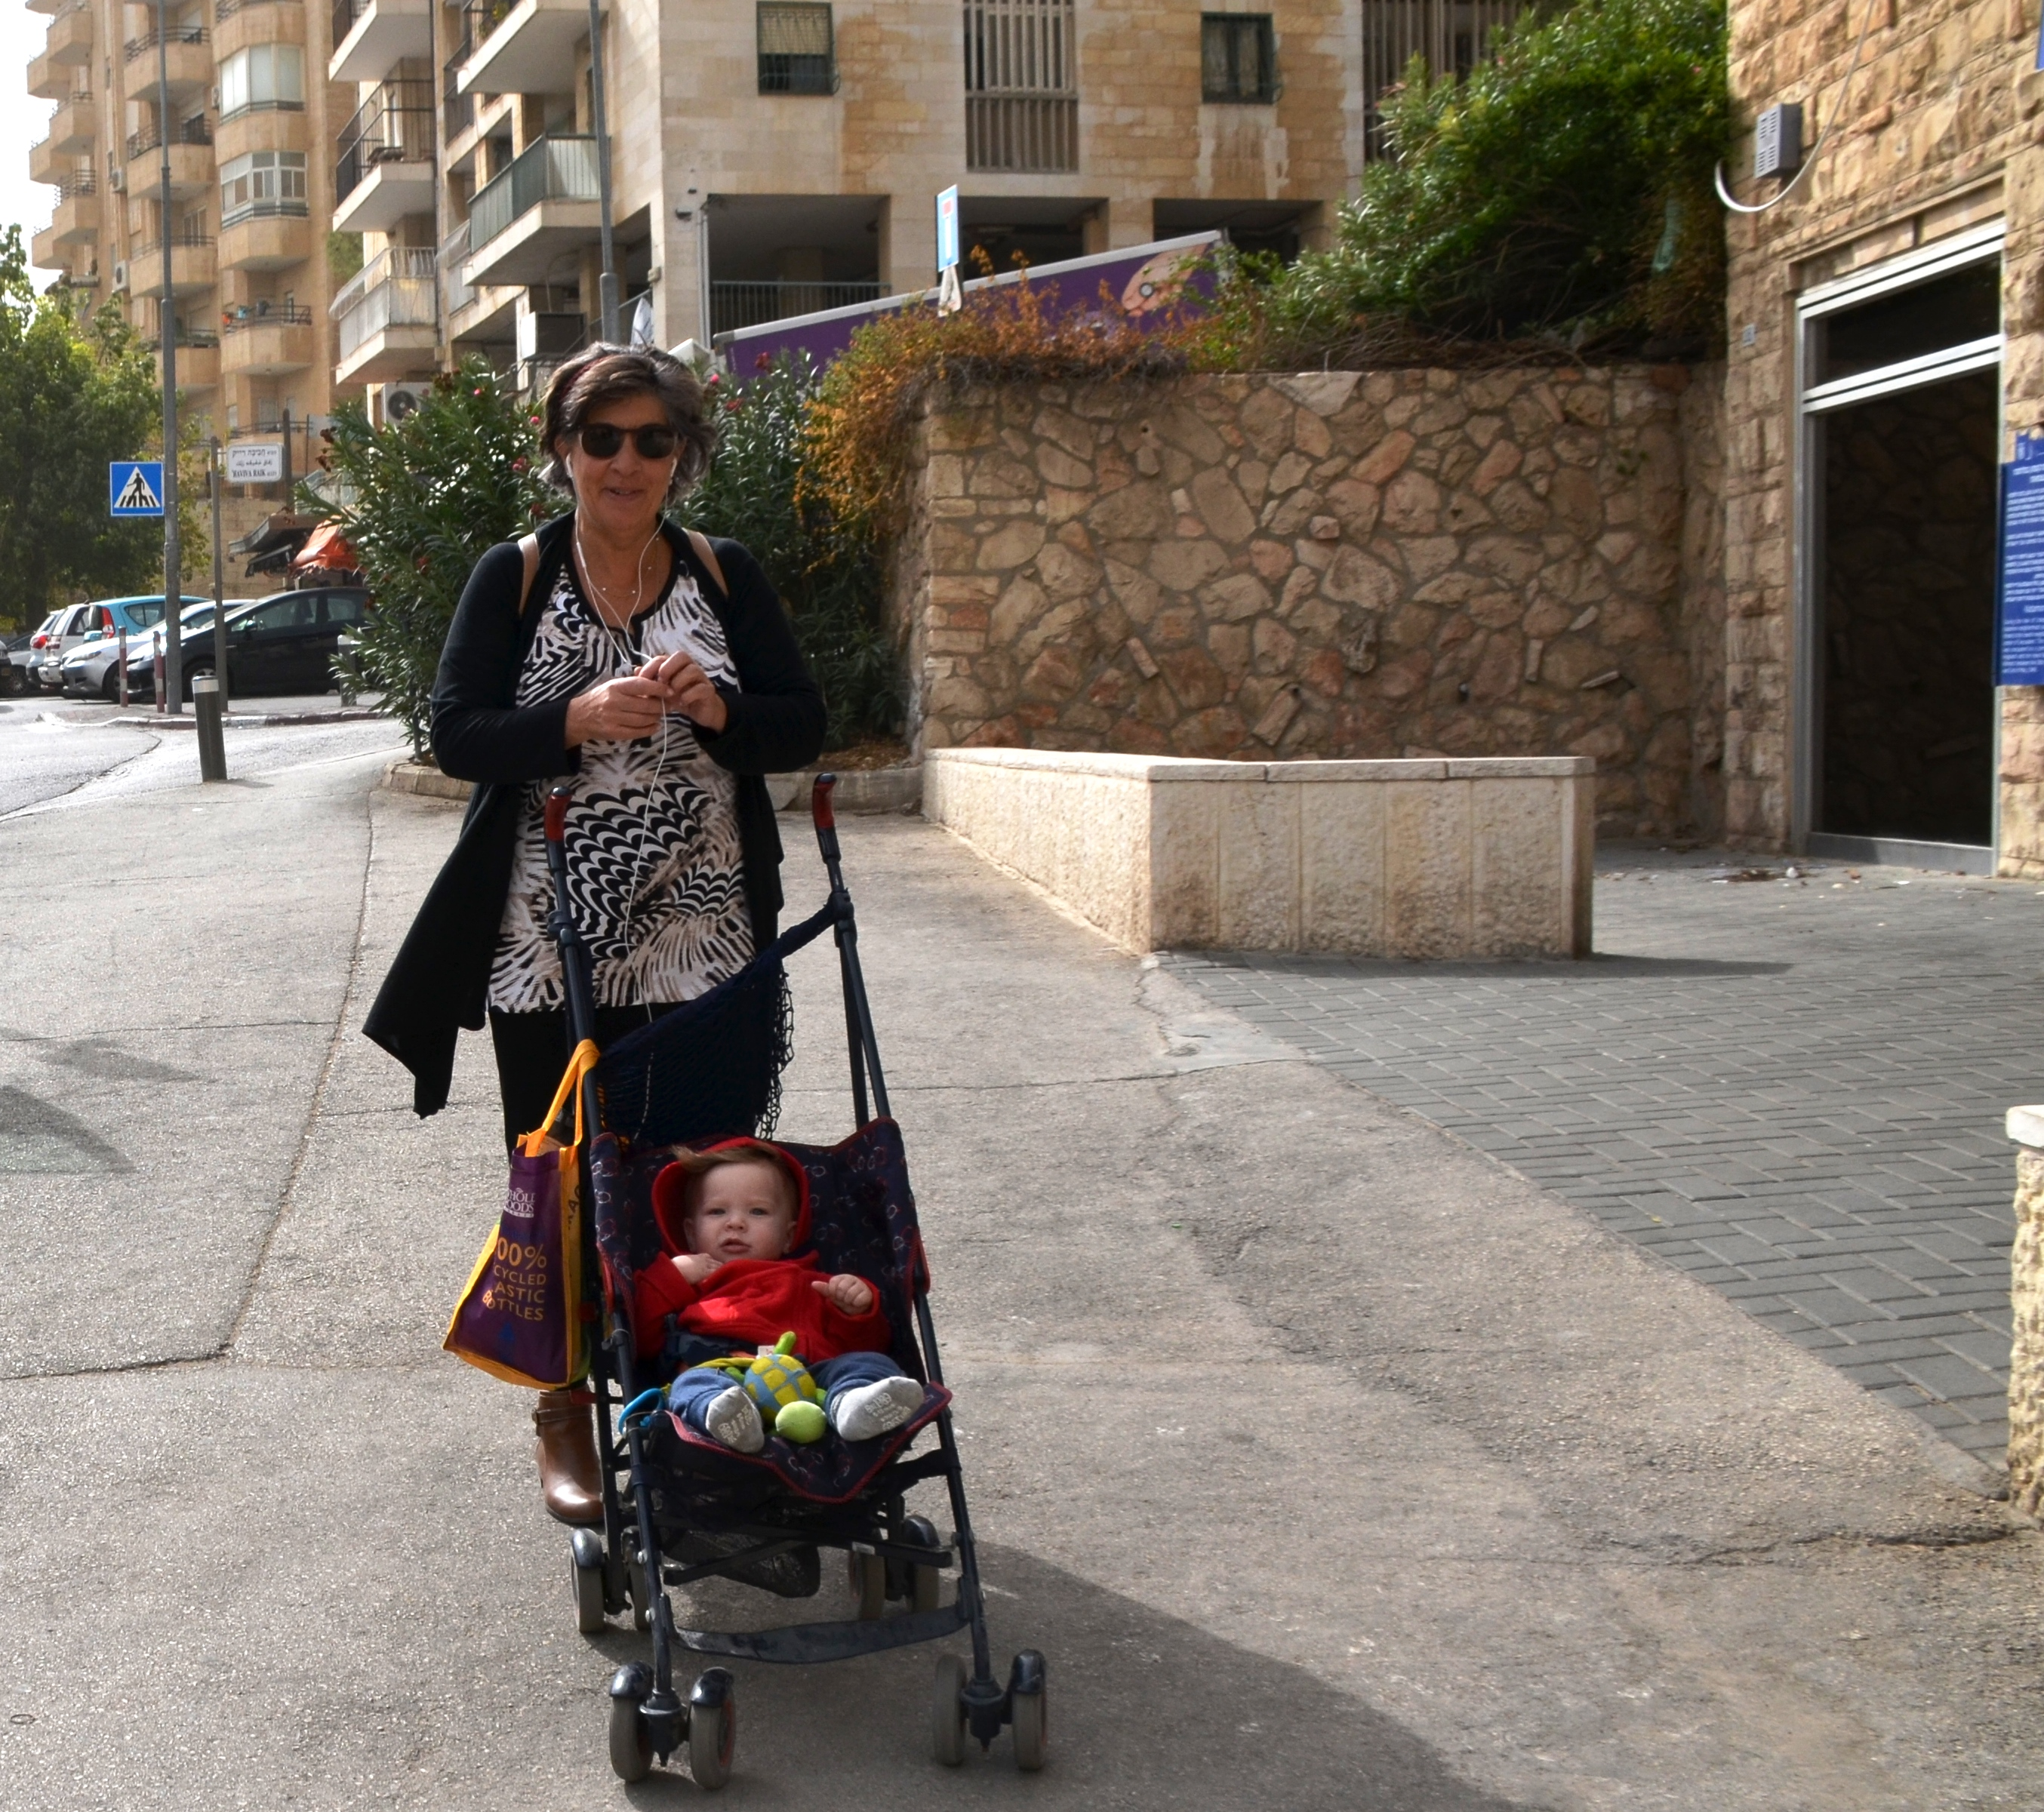 walking with stroller in Jerusalem